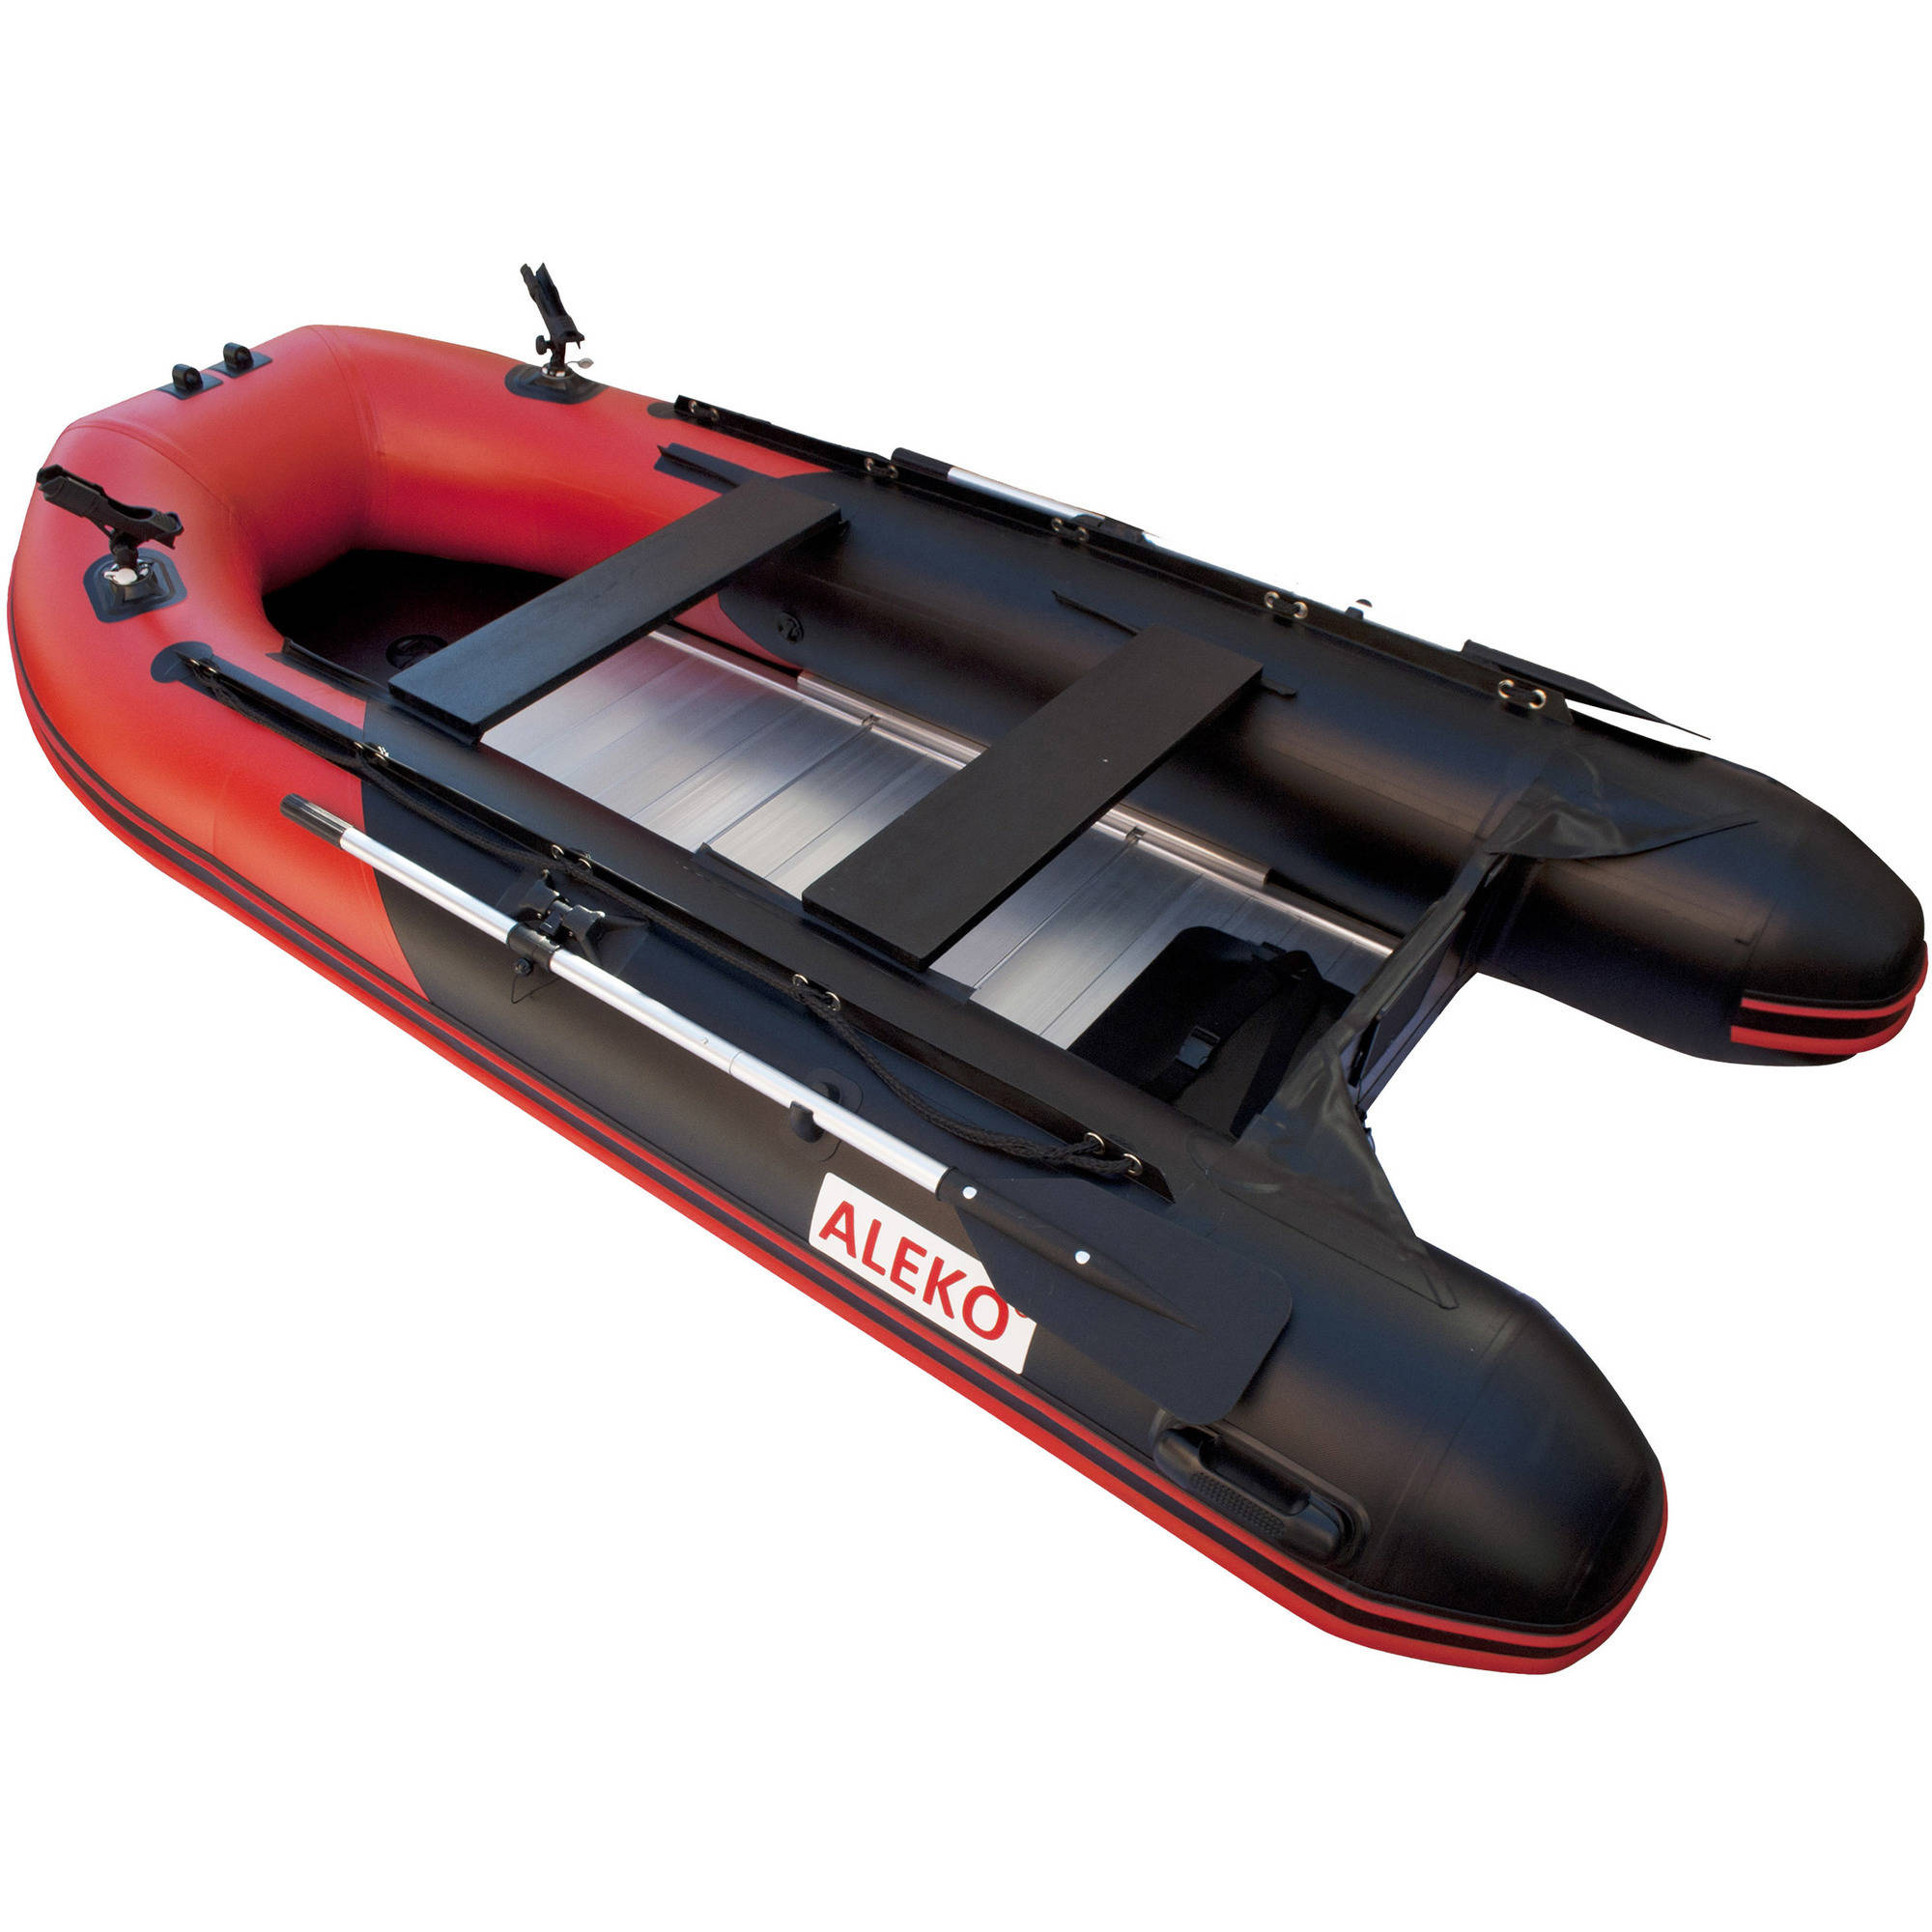 ALEKO BTF320GR PRO Fishing Boat Raft 10.5' with Aluminum Floor 4-Person Inflatable Boat with Fishing Rod... by ALEKO